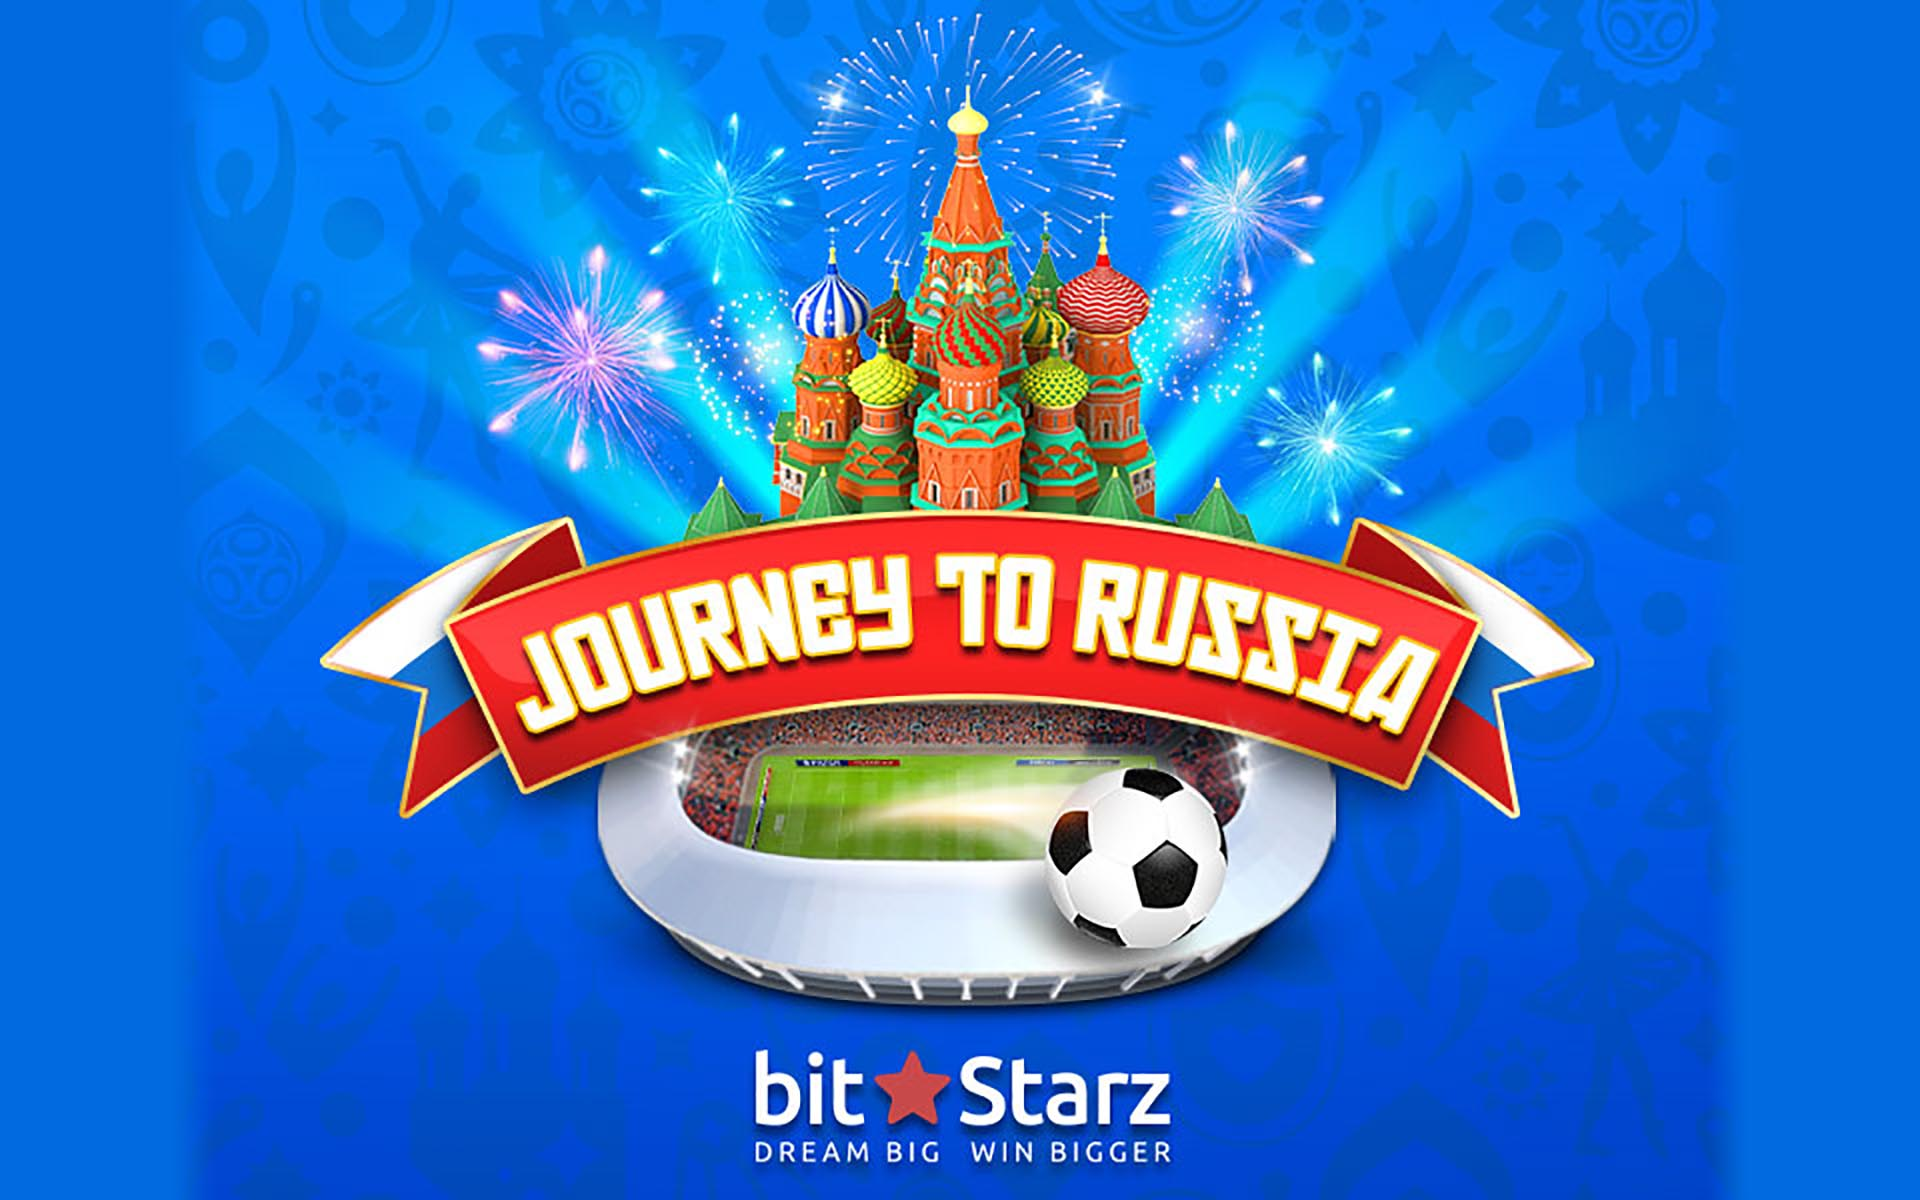 The Journey to Russia Has Begun at BitStarz!